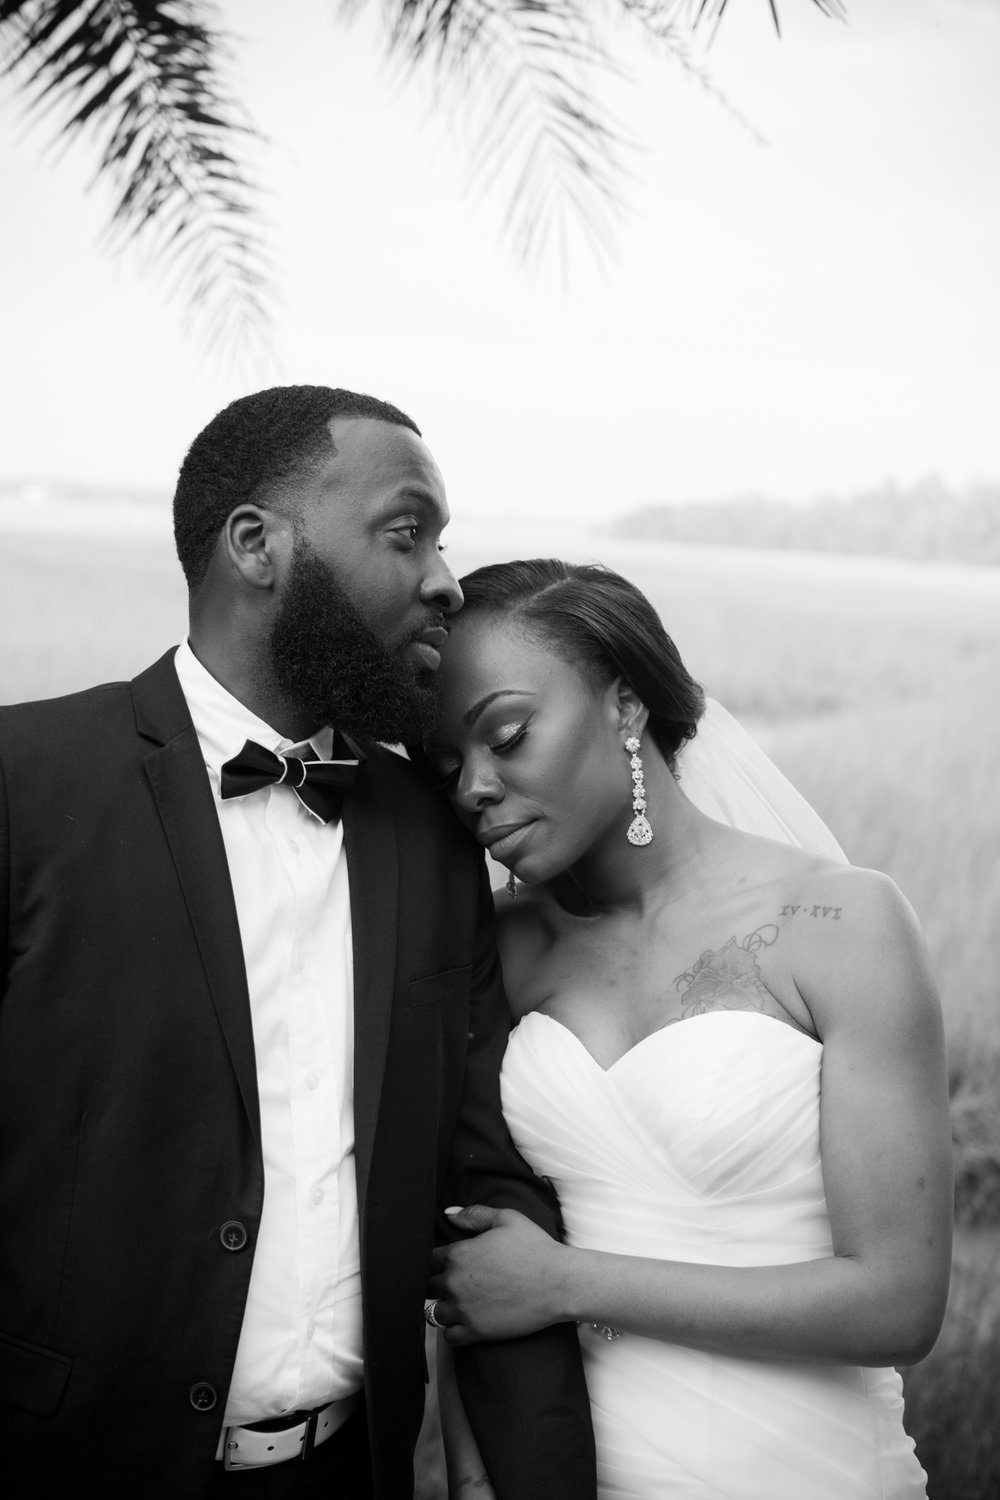 Wedding photography experience